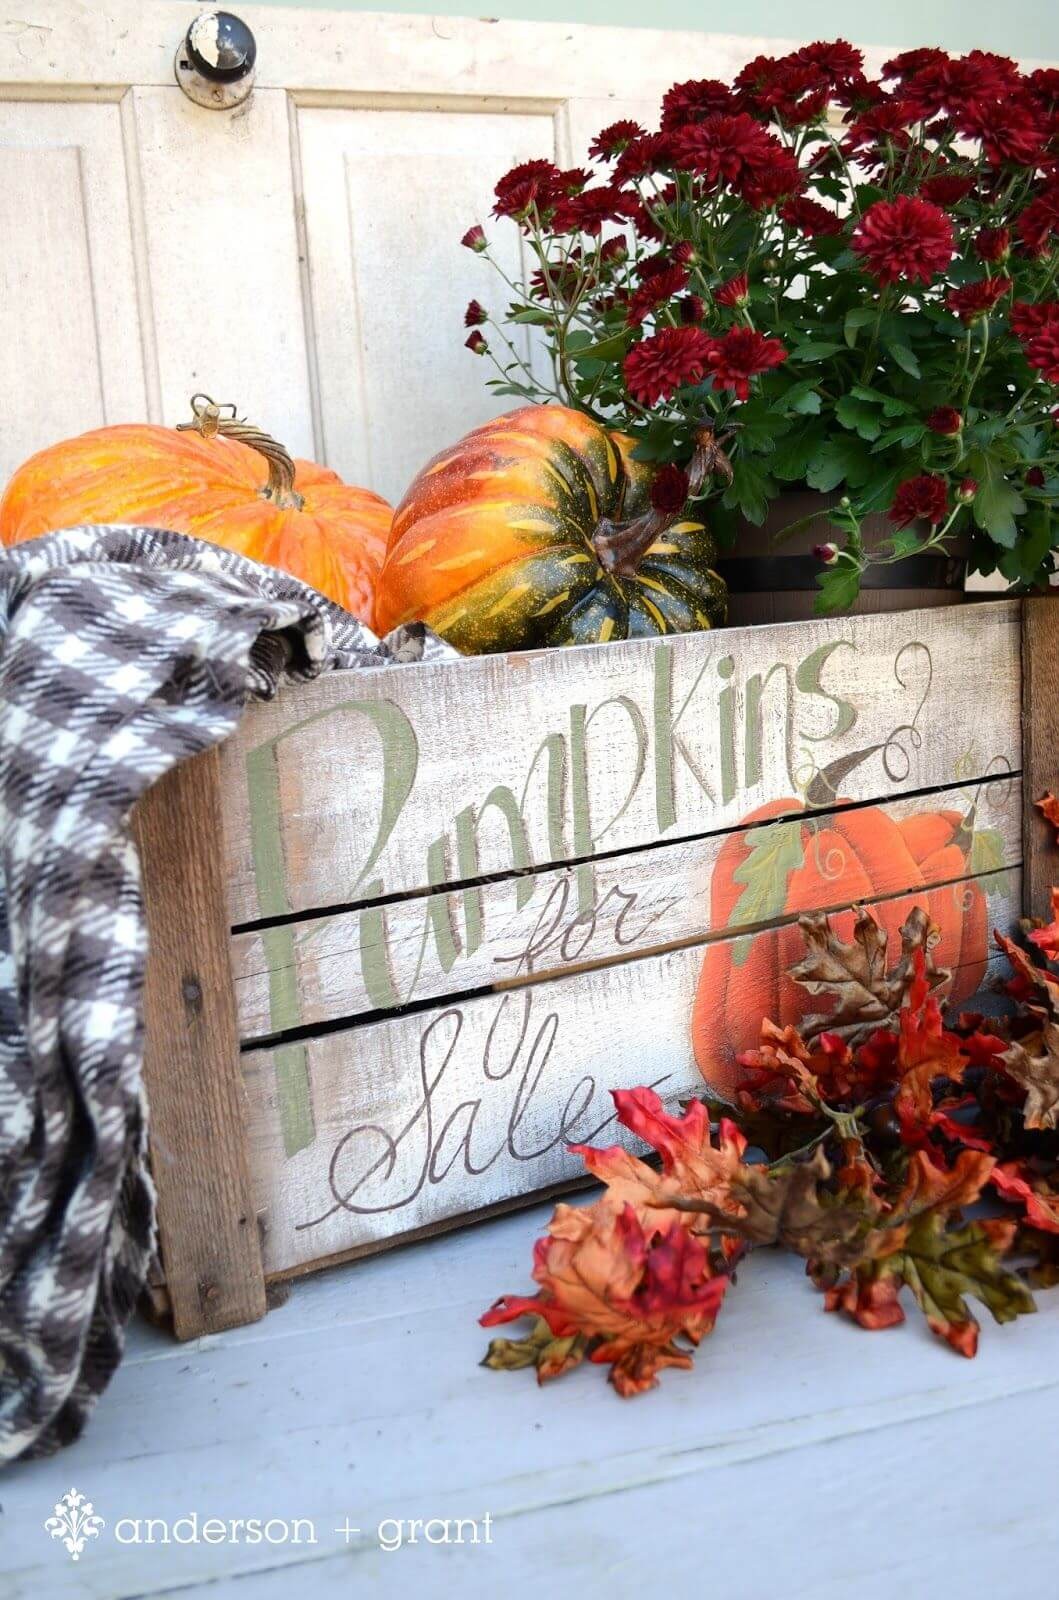 Hand Painted Harvest Pumpkin Crate for Fall